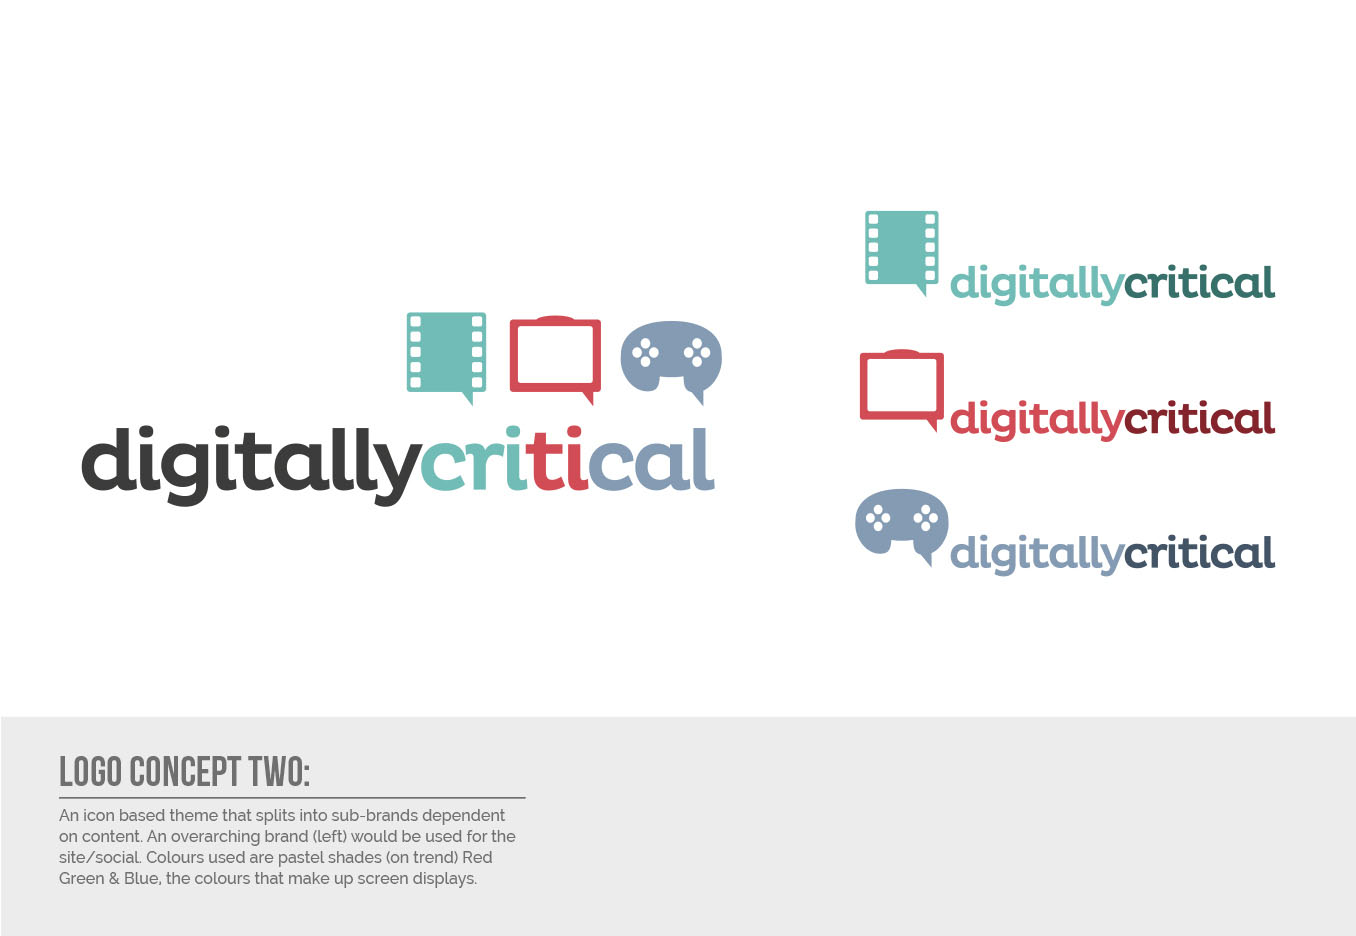 Digitally Critical Logo Design - Concept Two